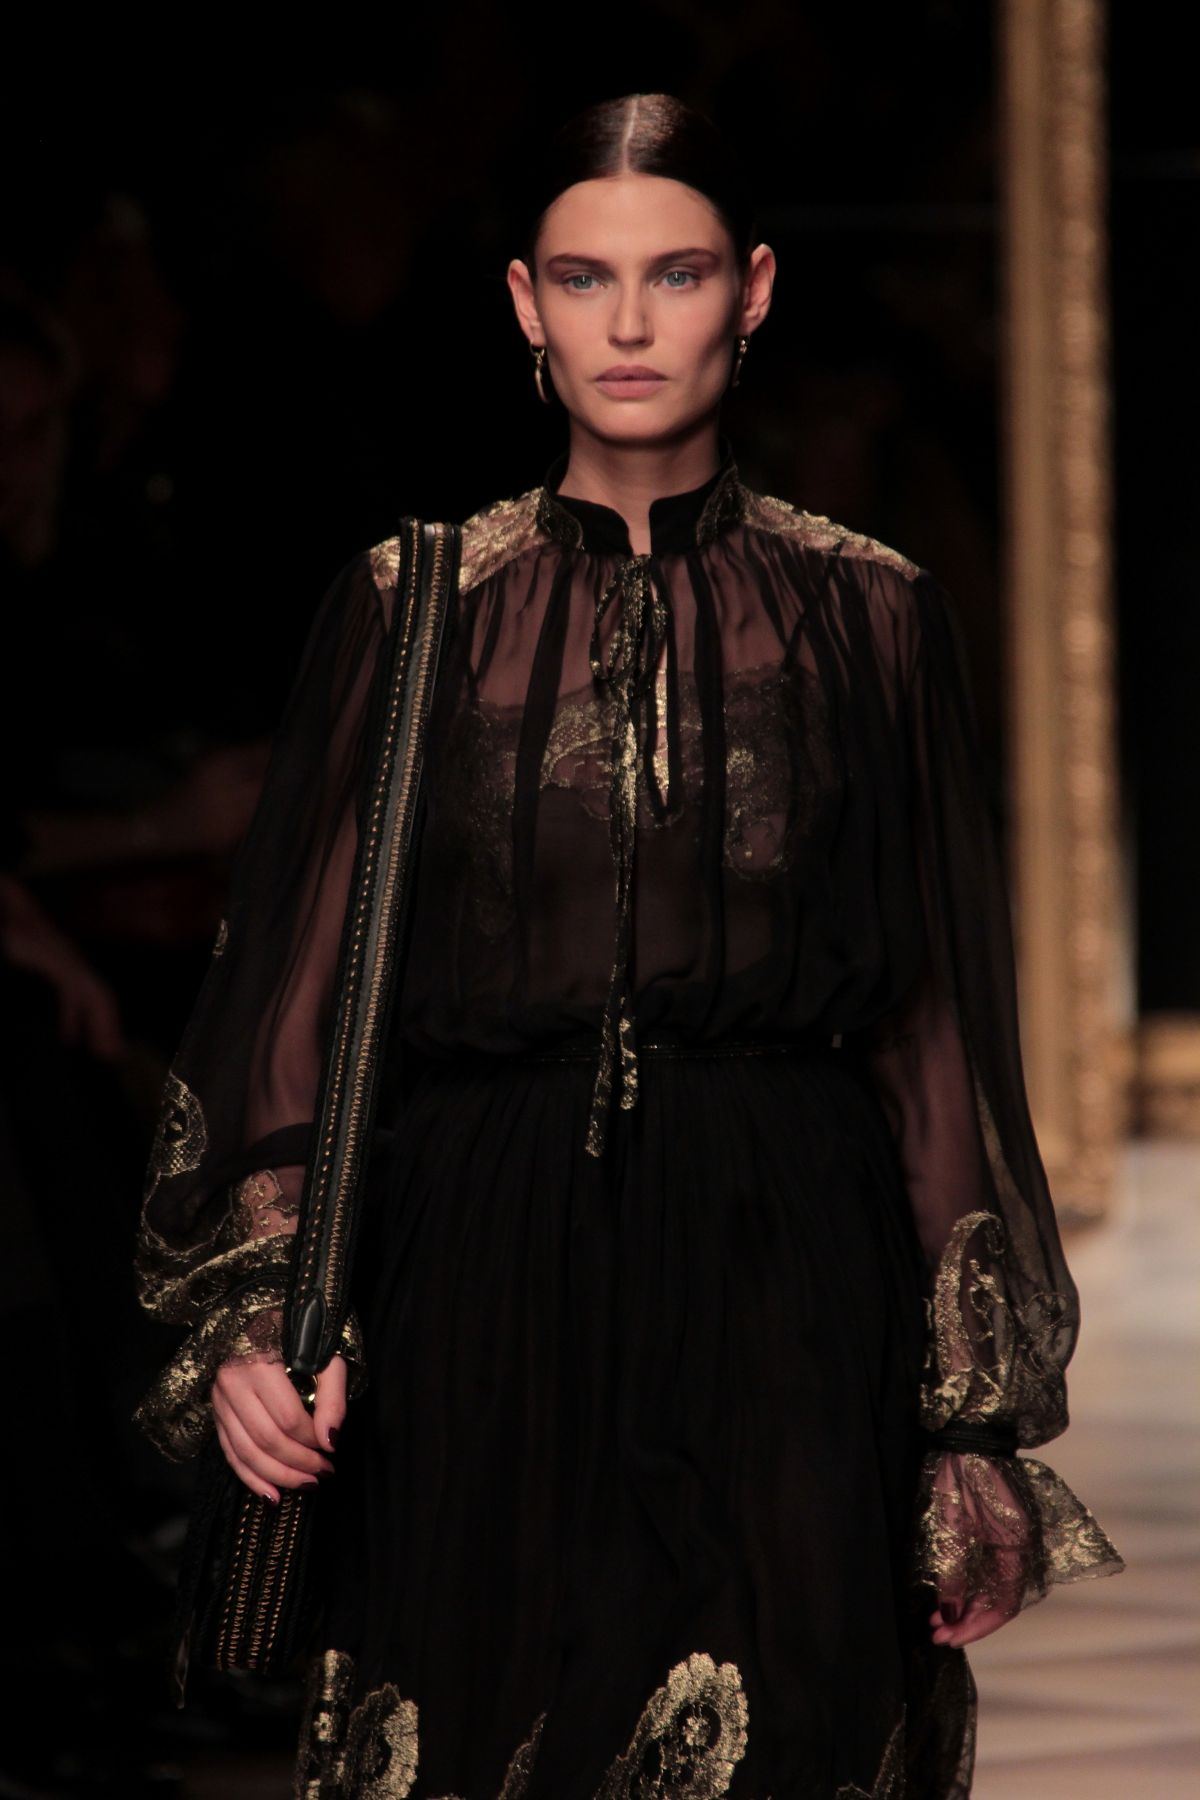 Milan Fashion Week 2012 Salvatore Ferragamo Woman